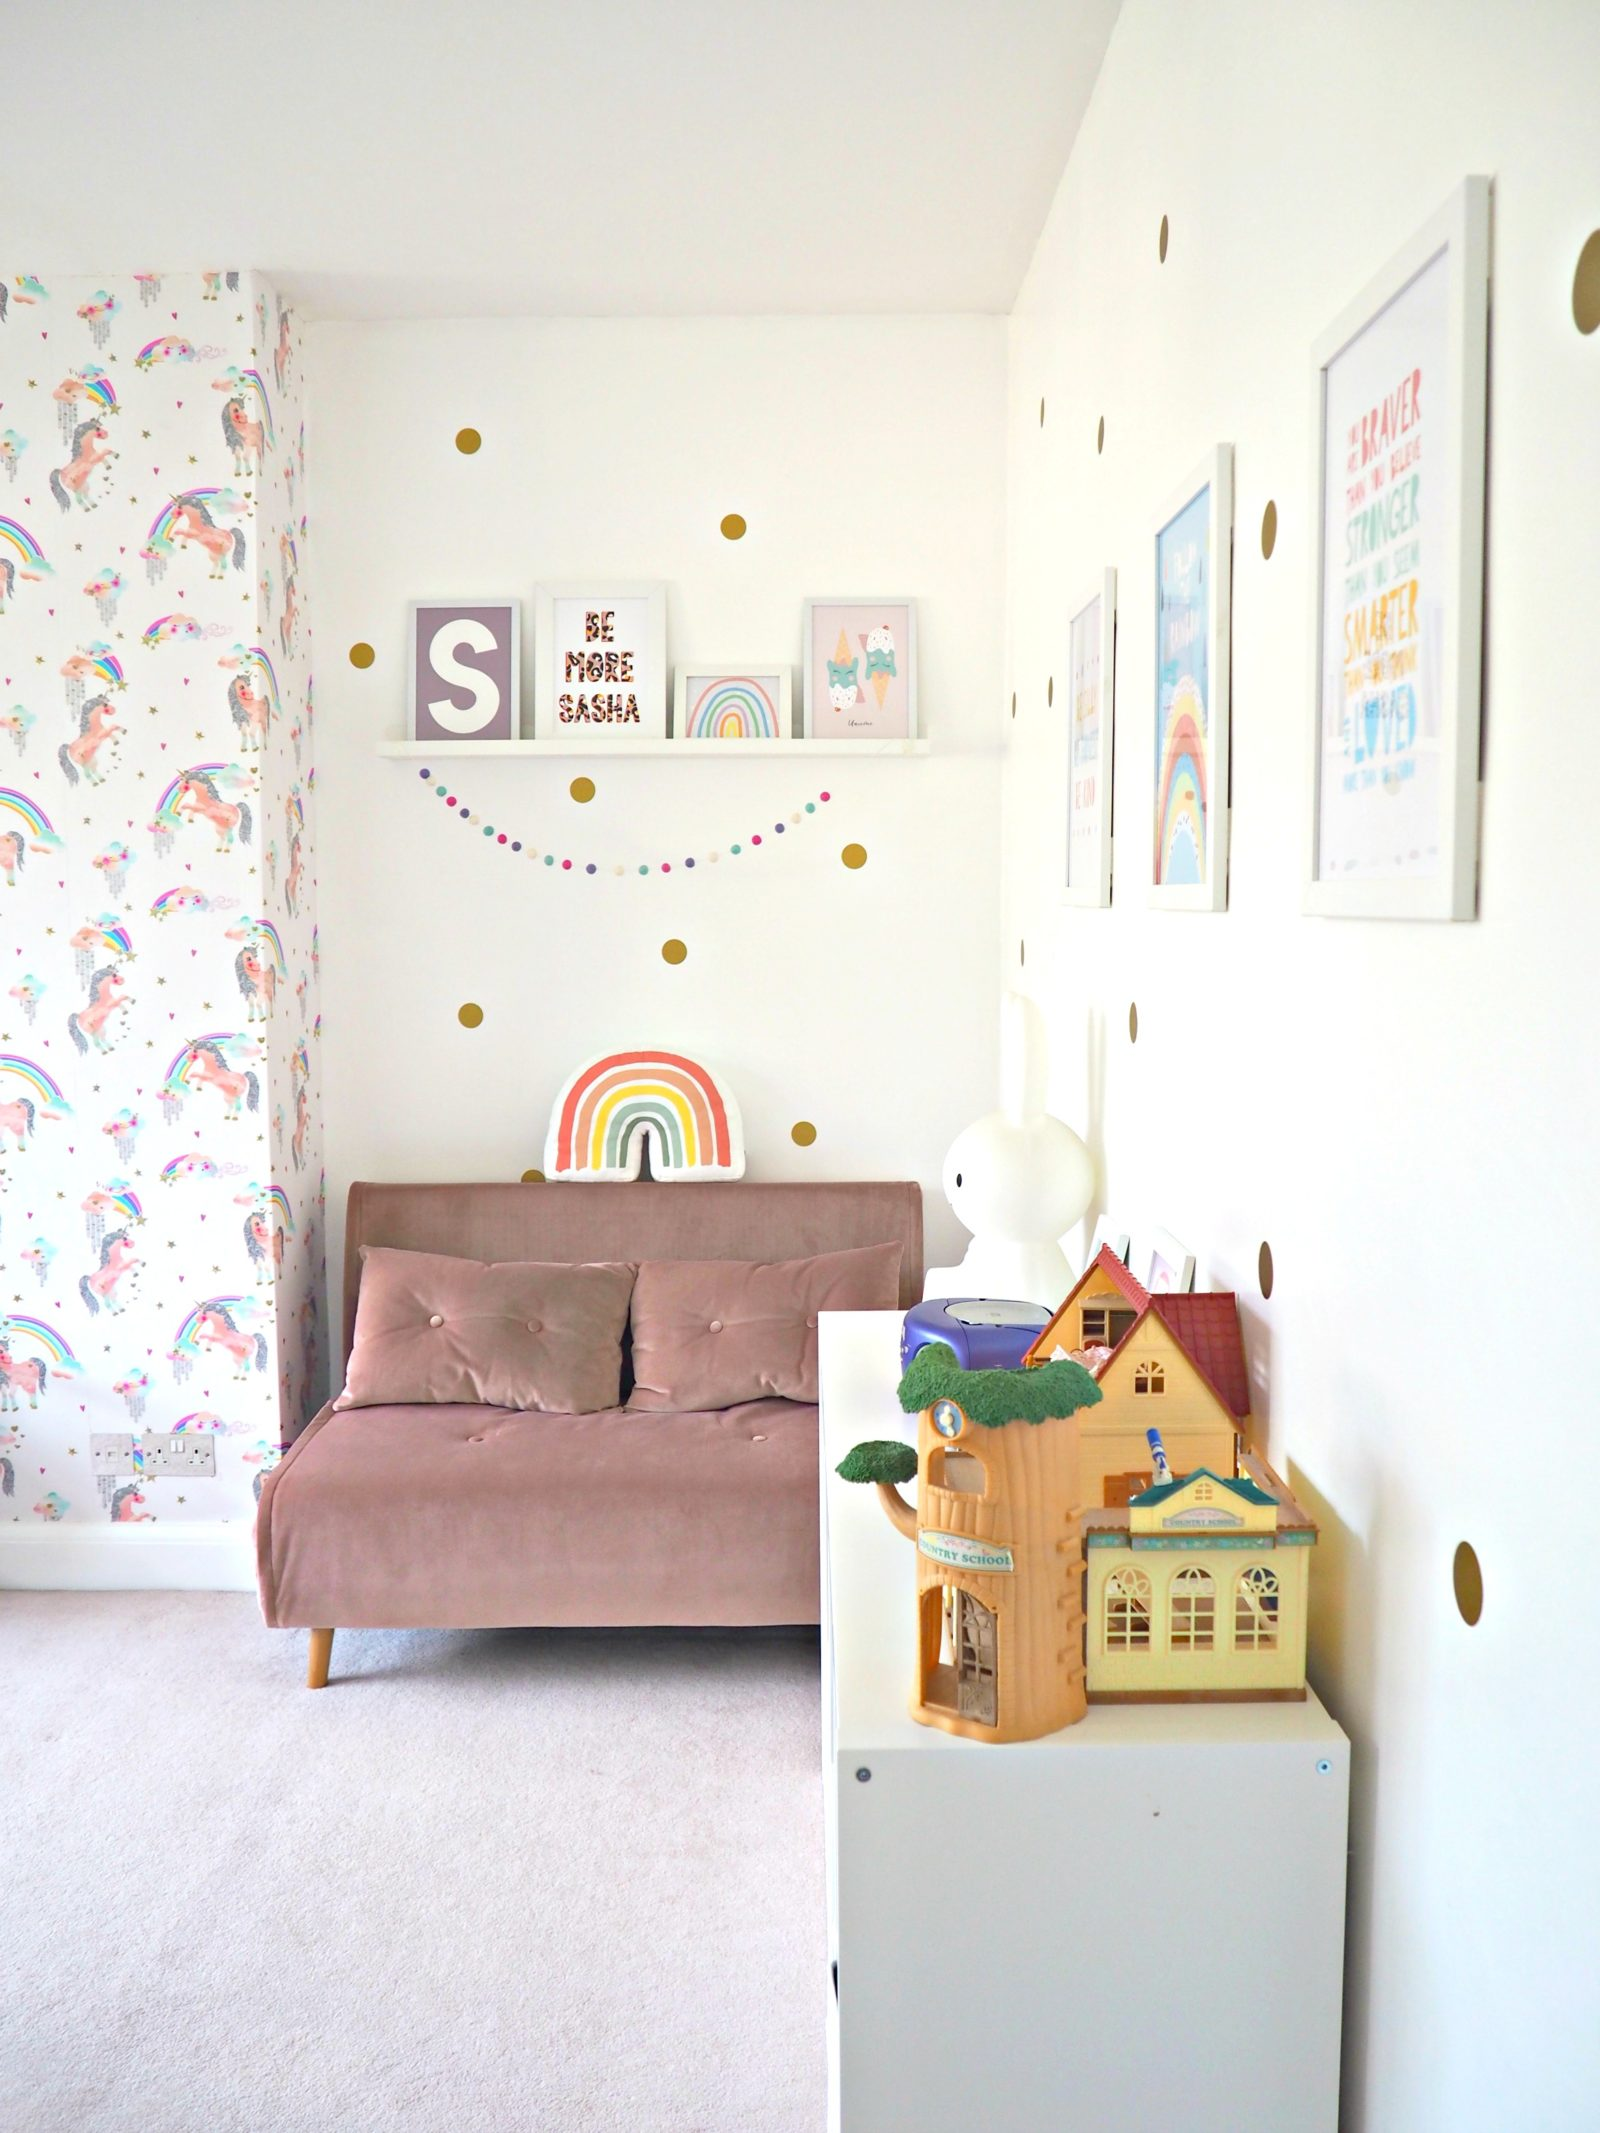 Sasha's new Rainbow and Unicorn Bedroom